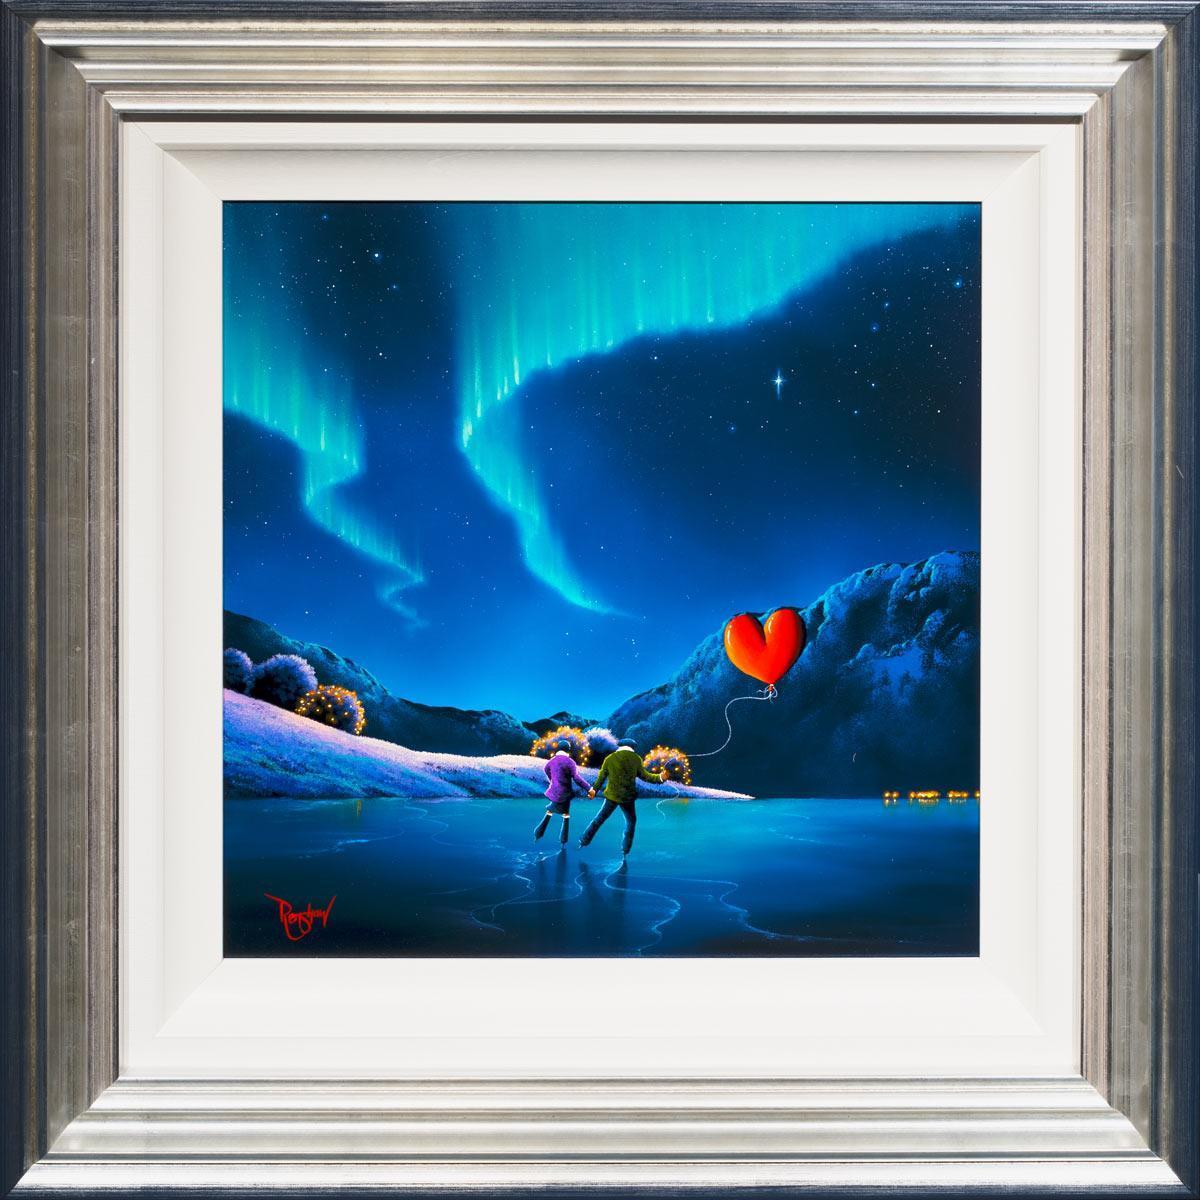 All For You - Original David Renshaw